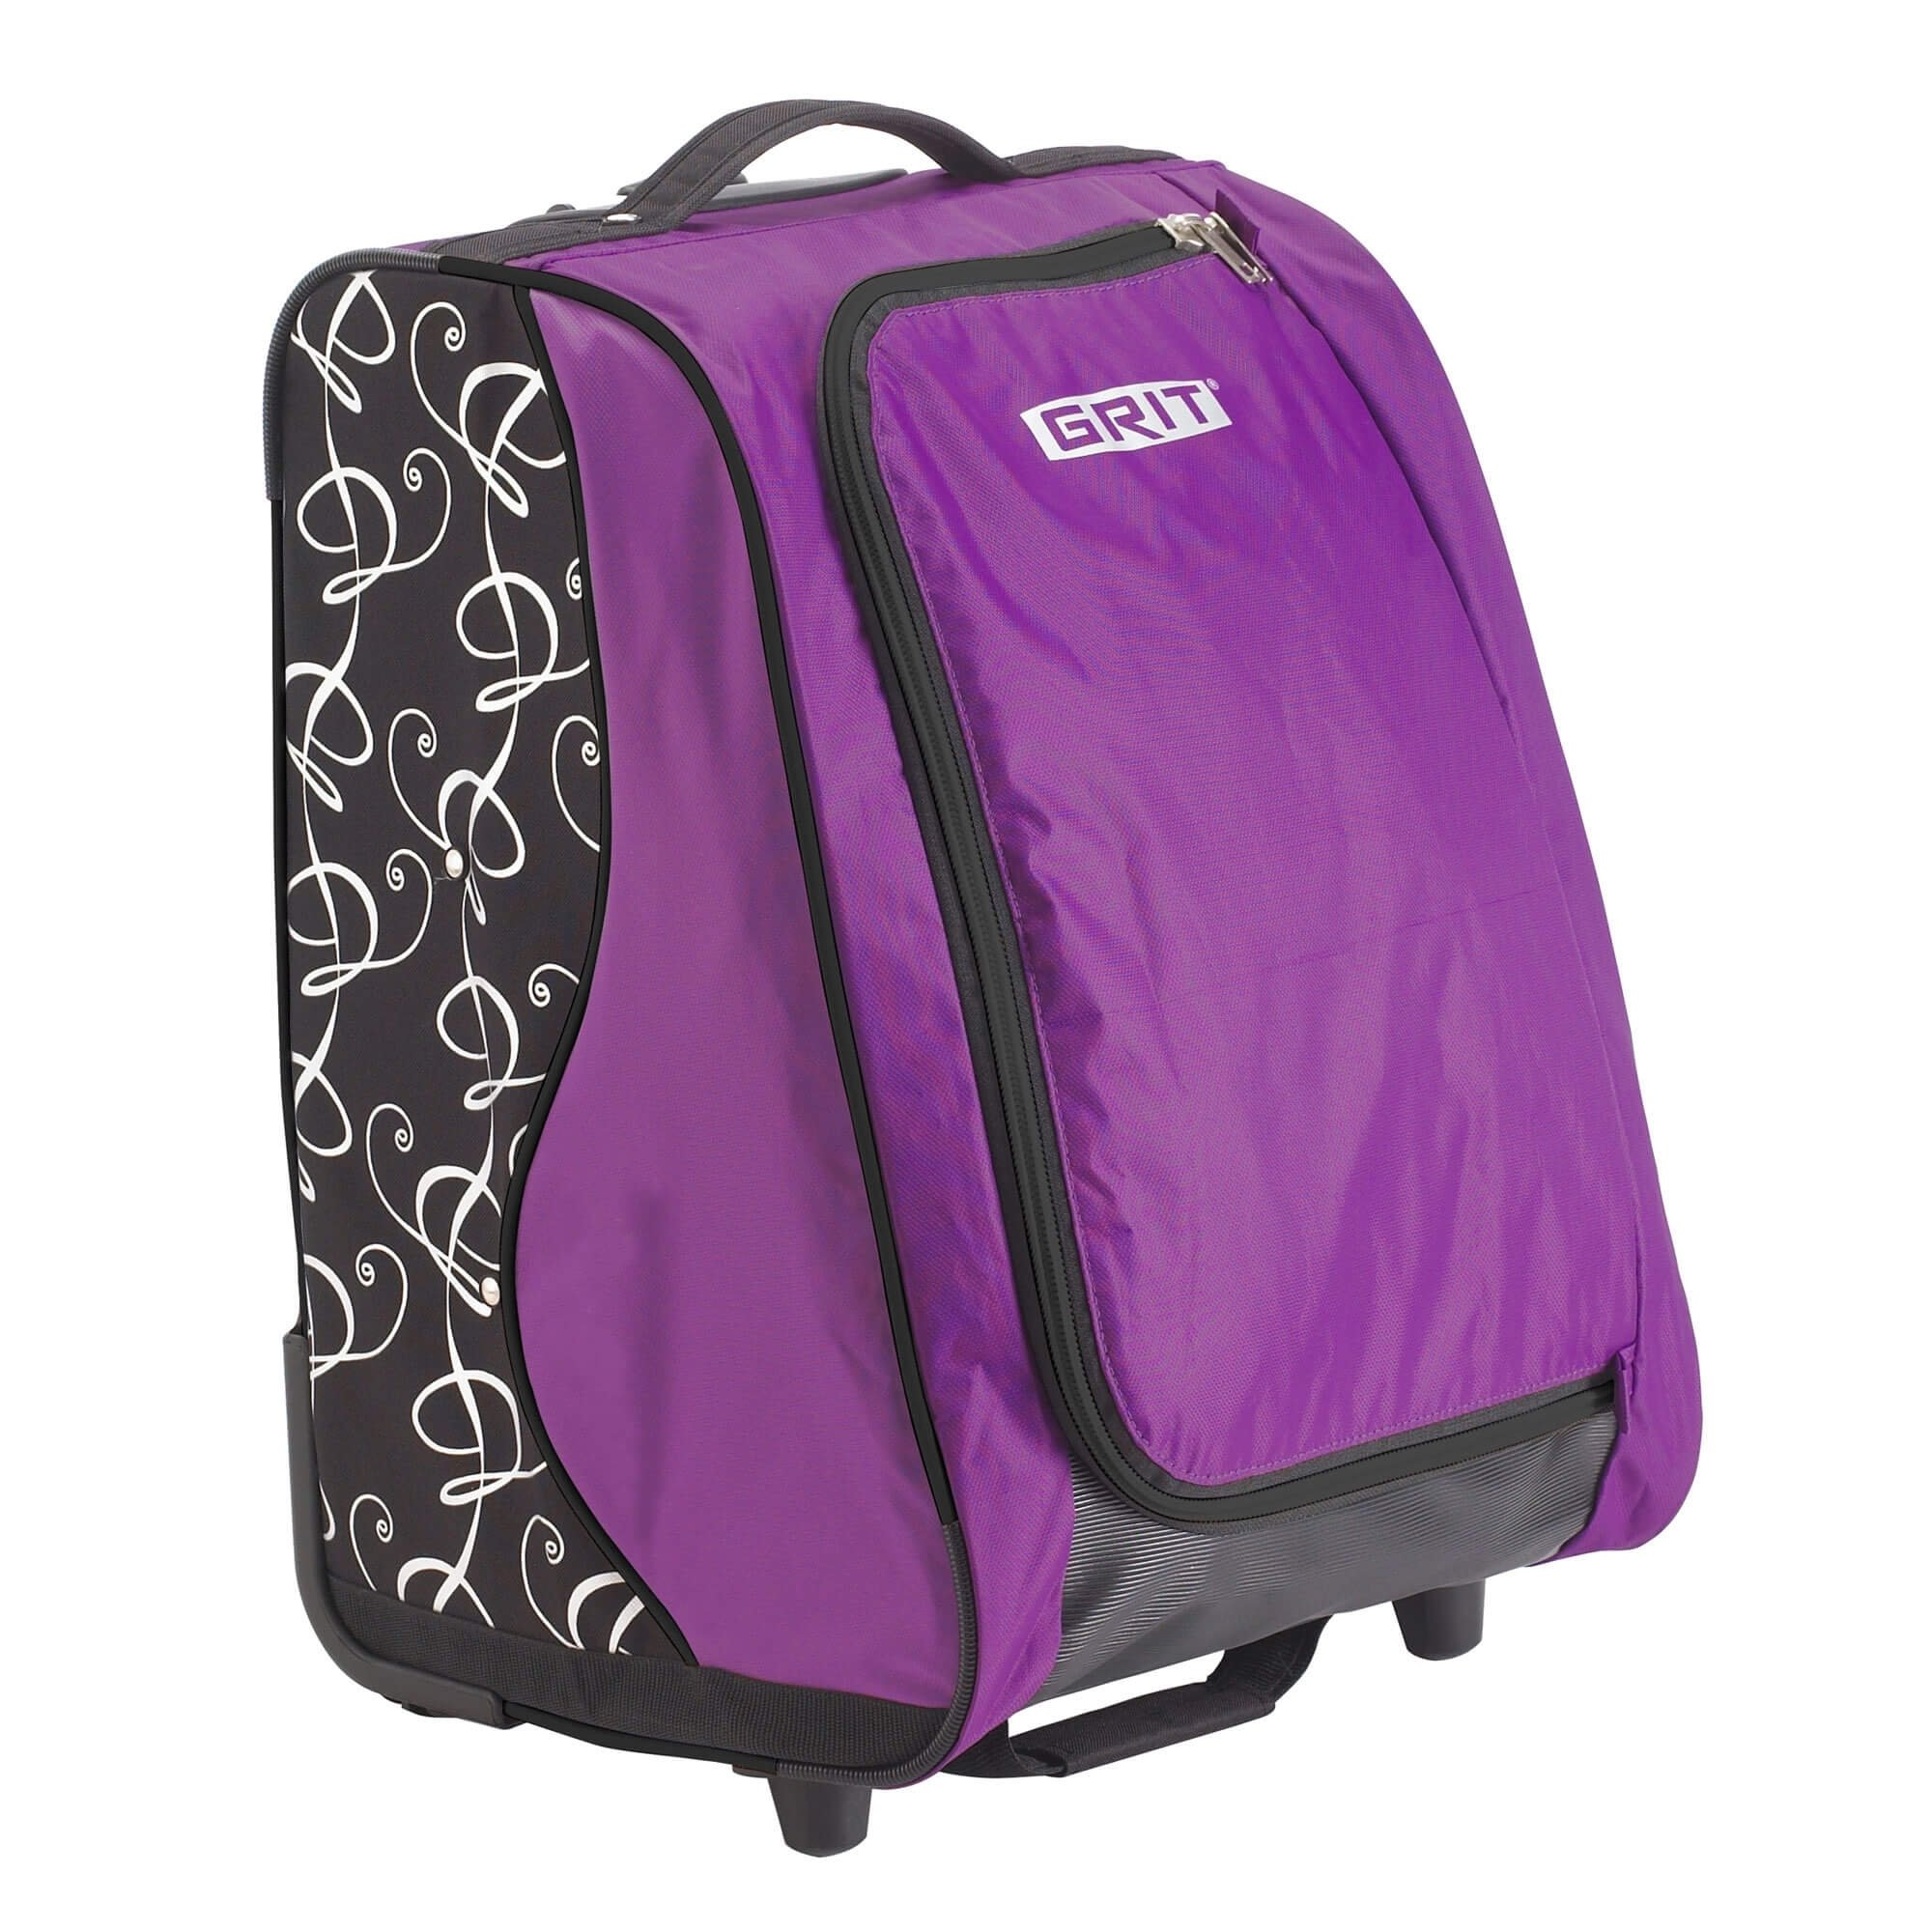 "Grit Figure Skate Bag 20""(Bag Only)"